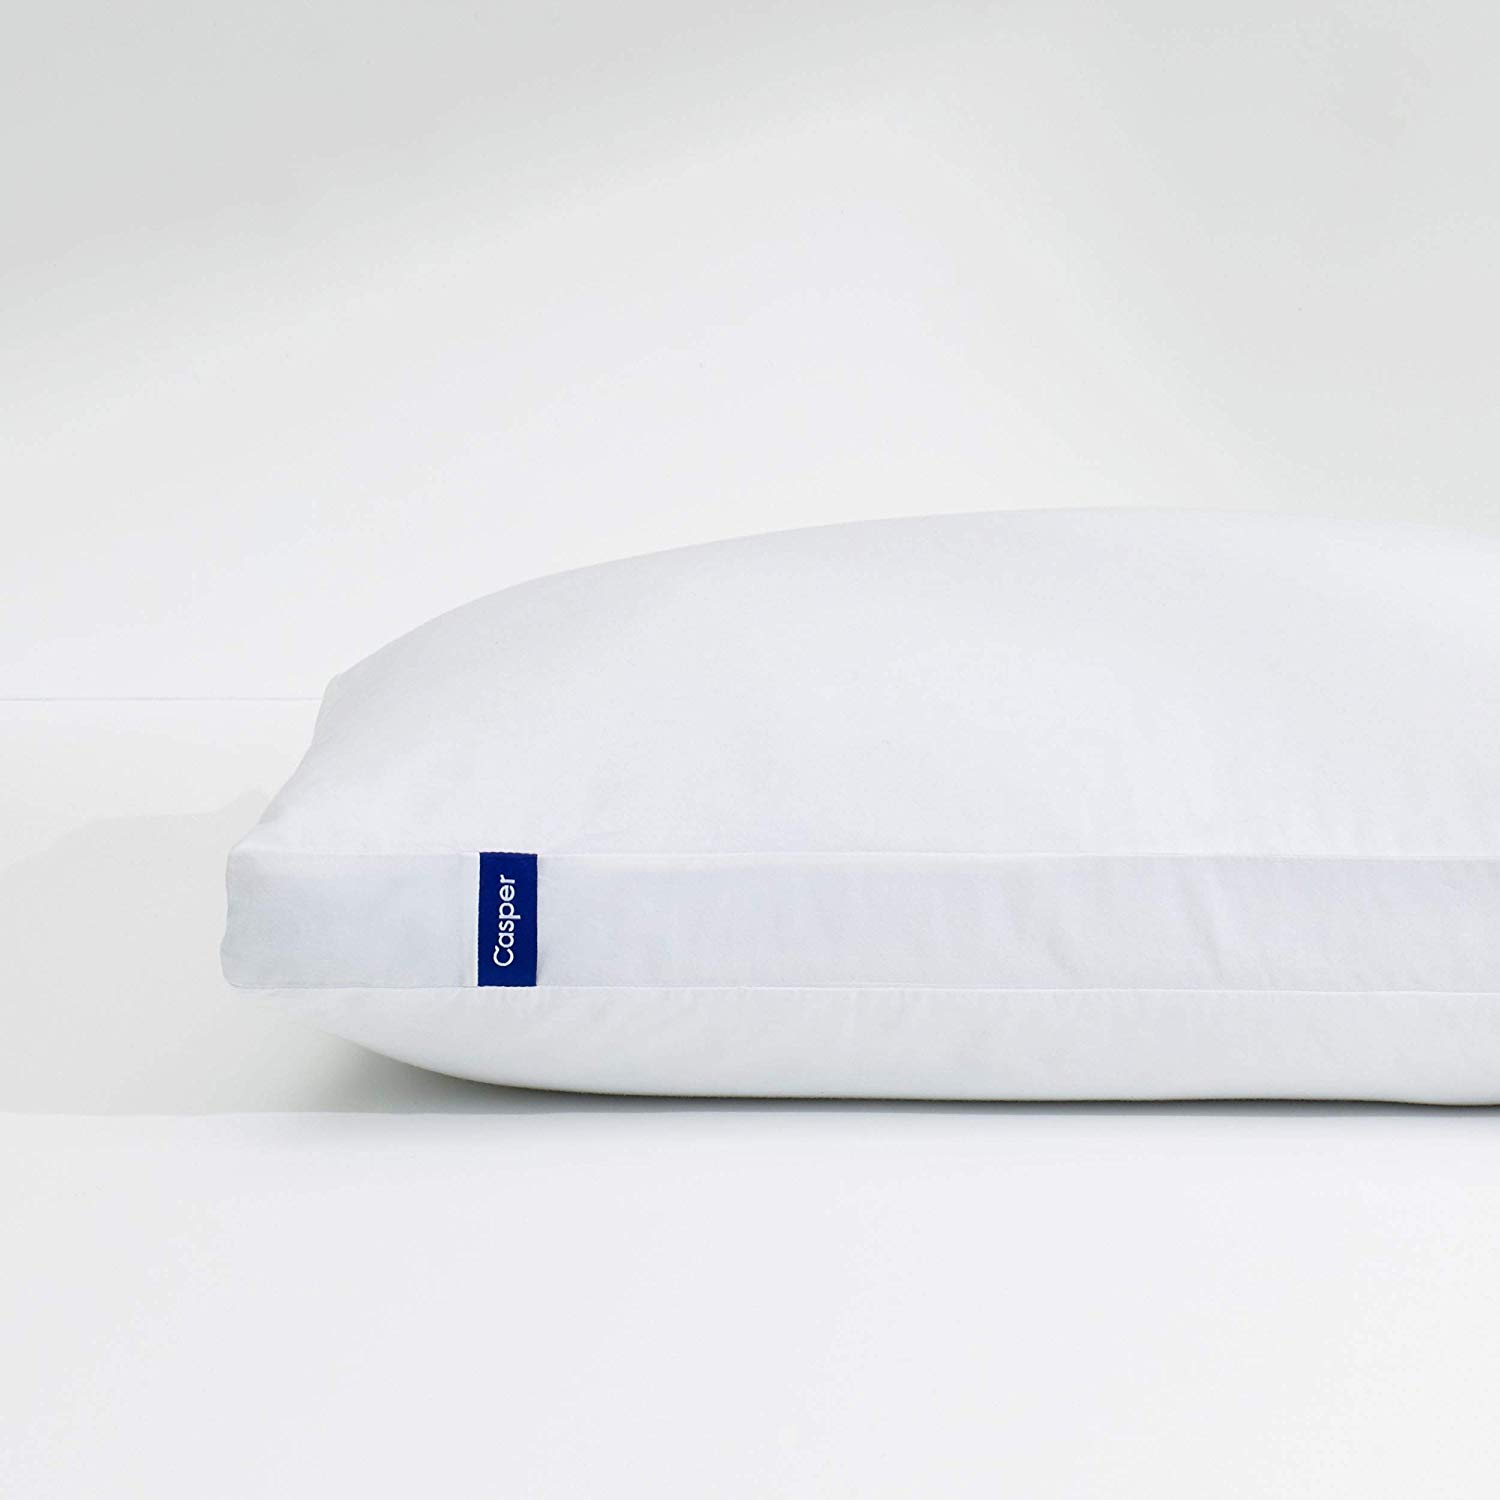 Casper Best Pillow For Back Sleepers Review by www.snoremagazine.com